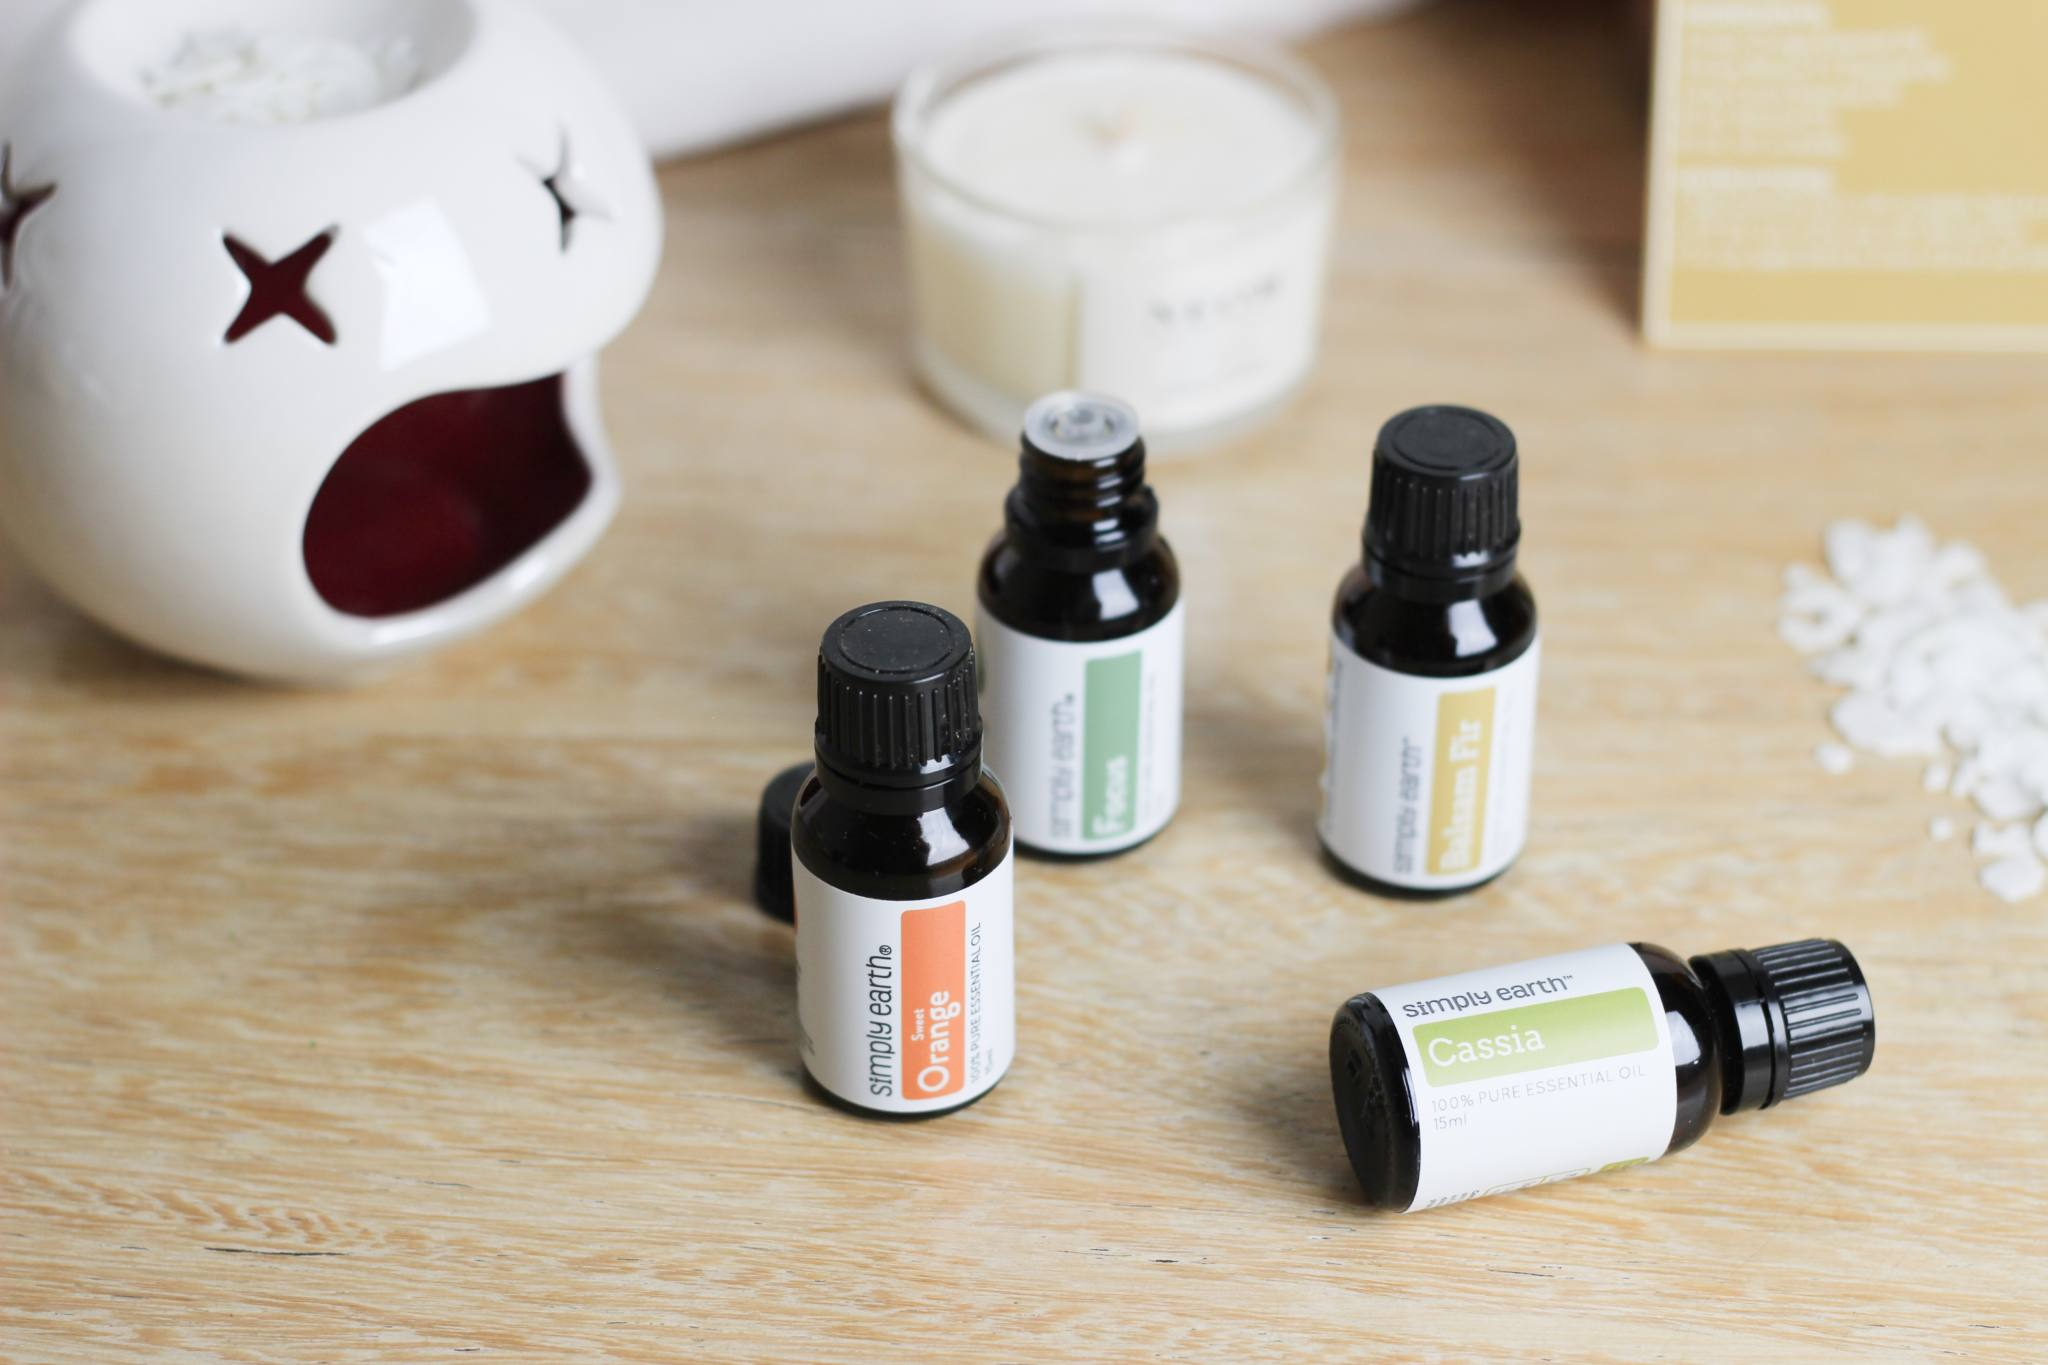 Simply Earth Bottles of Essential Oils in front of an oil burner and candle